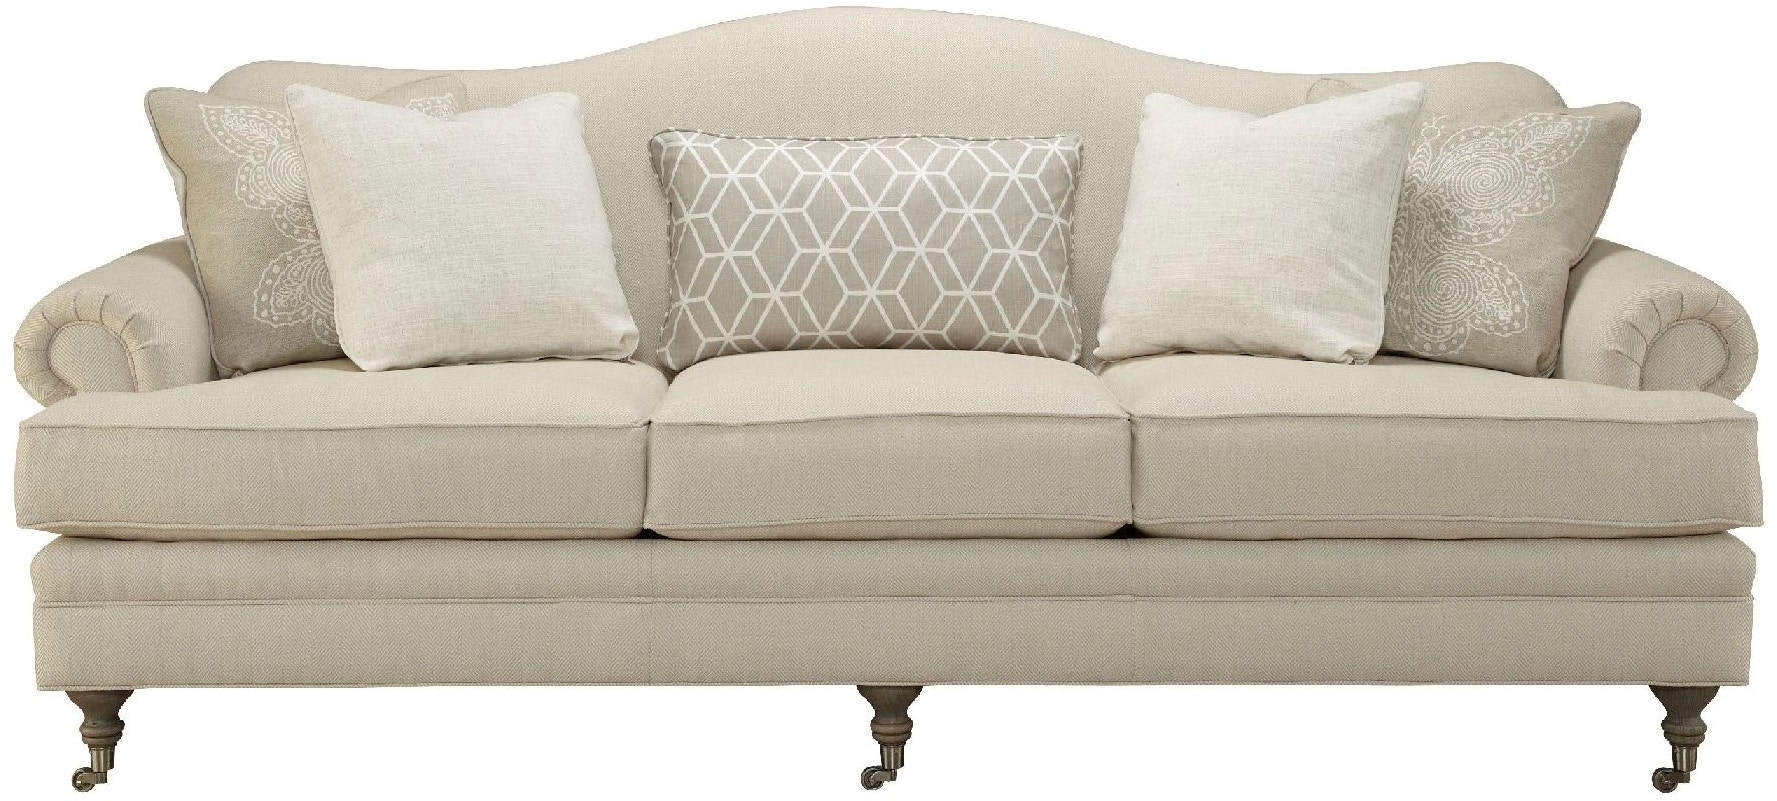 Southern Furniture Living Room Molly Sofa Whitley